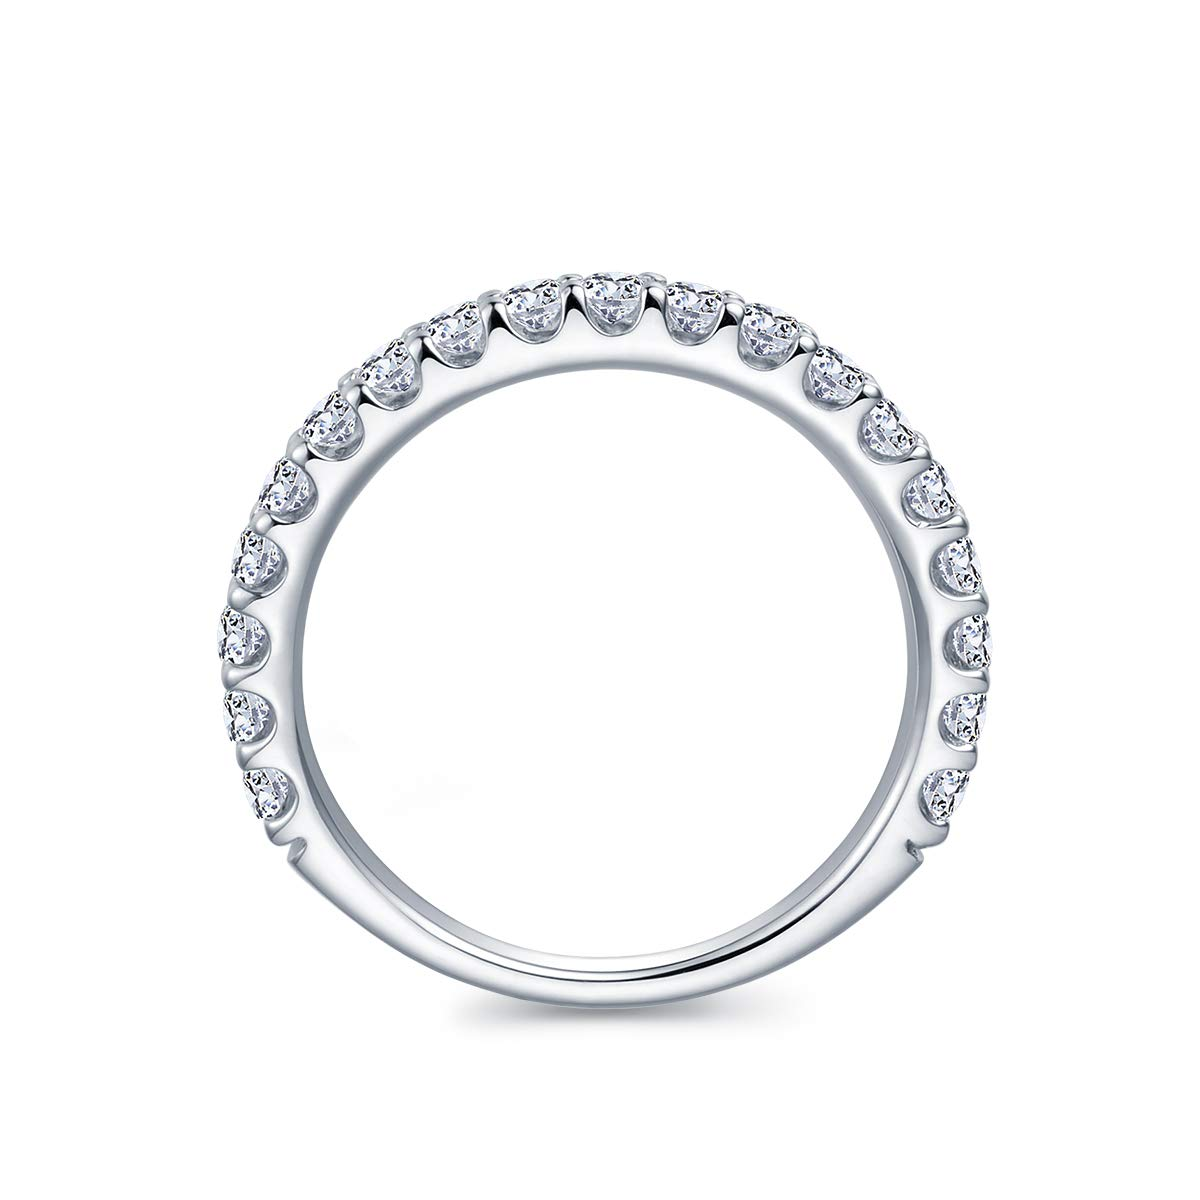 3mm Rhodium Plated Sterling Silver Simulated Diamond Cubic Zirconia CZ Half Eternity Wedding Ring (9) by Hafeez Center (Image #3)